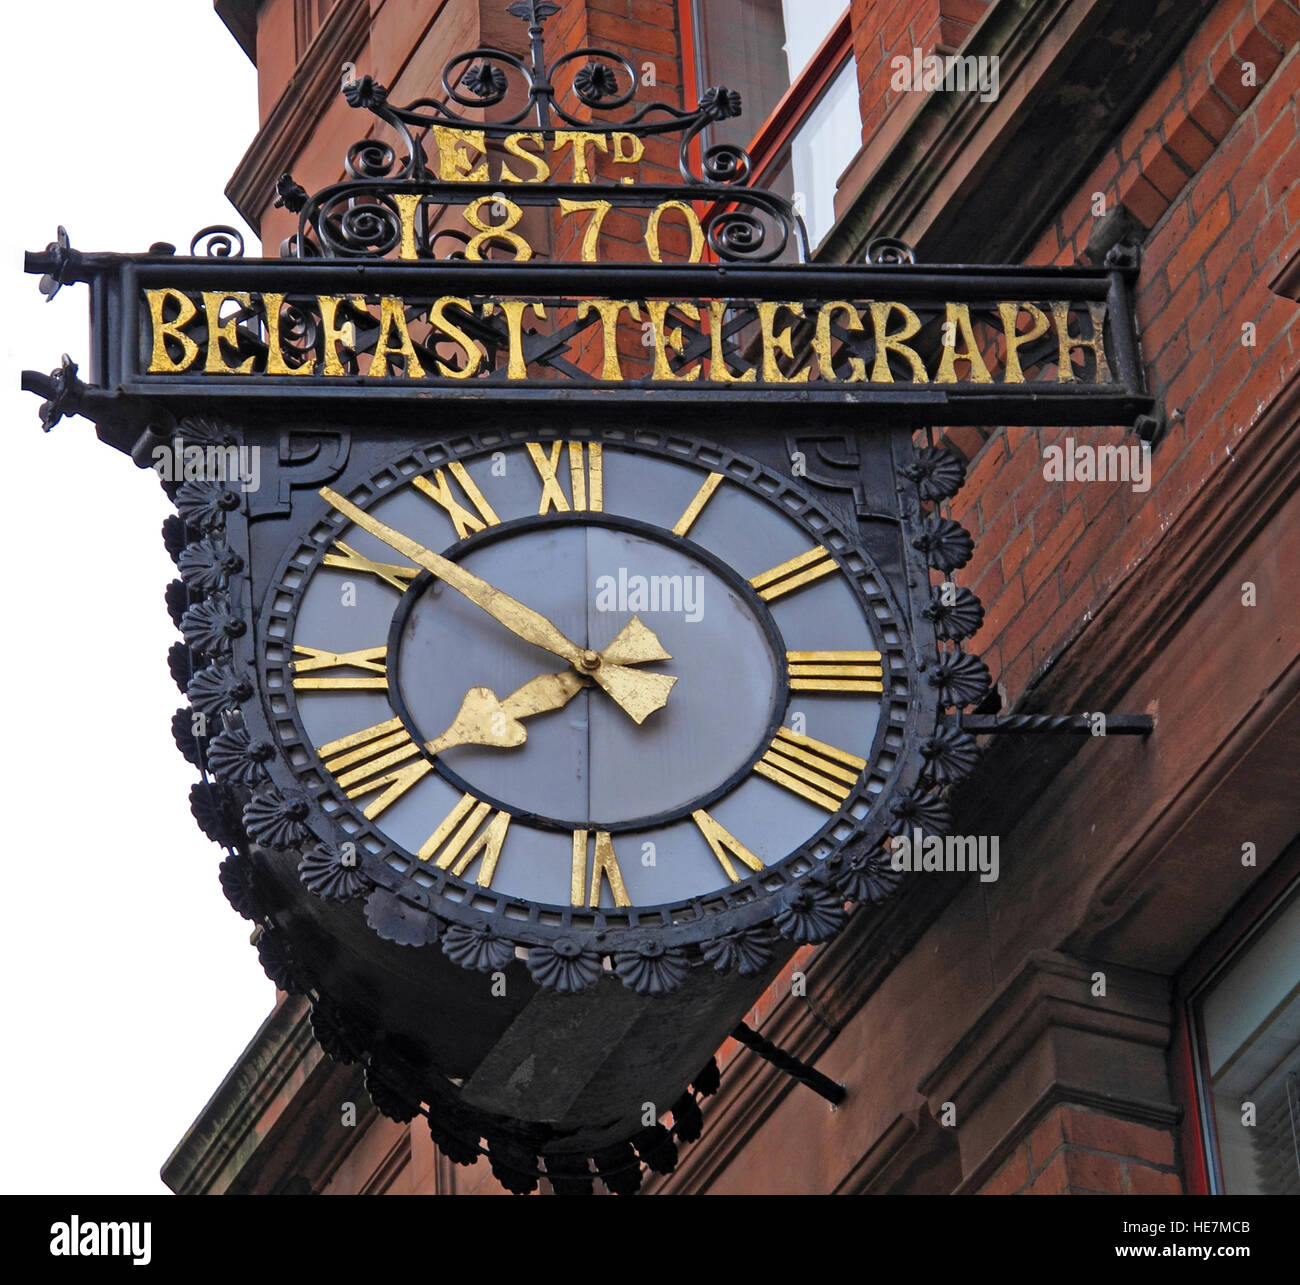 news,media,regional,newspaper,time,irish,Belfast Telegraph,estd 1870,clock,Belfast Telegraph House,33 Clarendon,rd,Road,Belfast,Northern Ireland,UK,red,brick,building,architecture,GoTonySmith,@HotpixUK,Tony,Smith,UK,GB,Great,Britain,United,Kingdom,Irish,British,Ireland,problem,with,problem with,issue with,NI,Northern,Northern Ireland,Belfast,City,Centre,Art,Artists,the,troubles,The Troubles,Good Friday Agreement,Peace,honour,painting,wall,walls,tribute,republicanism,Fight,Justice,West,Beal,feirste,martyrs,social,tour,tourism,tourists,urban,six,counties,6,backdrop,county,Antrim,Buy Pictures of,Buy Images Of,Images of,Stock Images,Tony Smith,United Kingdom,Great Britain,British Isles,Irish History,Ireland History,Northern Ireland History